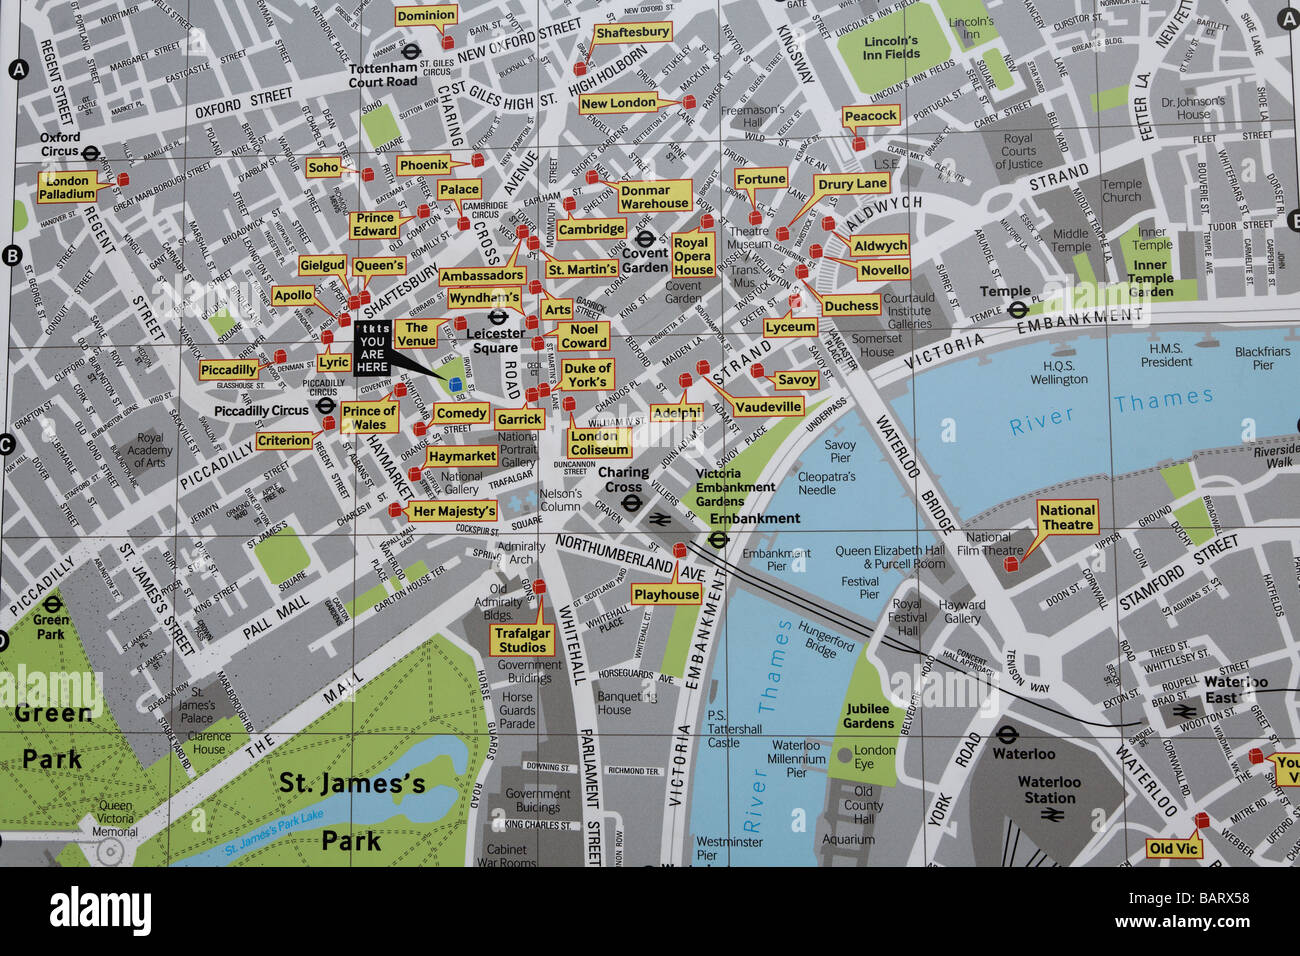 Map Of West End Of London.Map Of West End Theatres London England Stock Photo